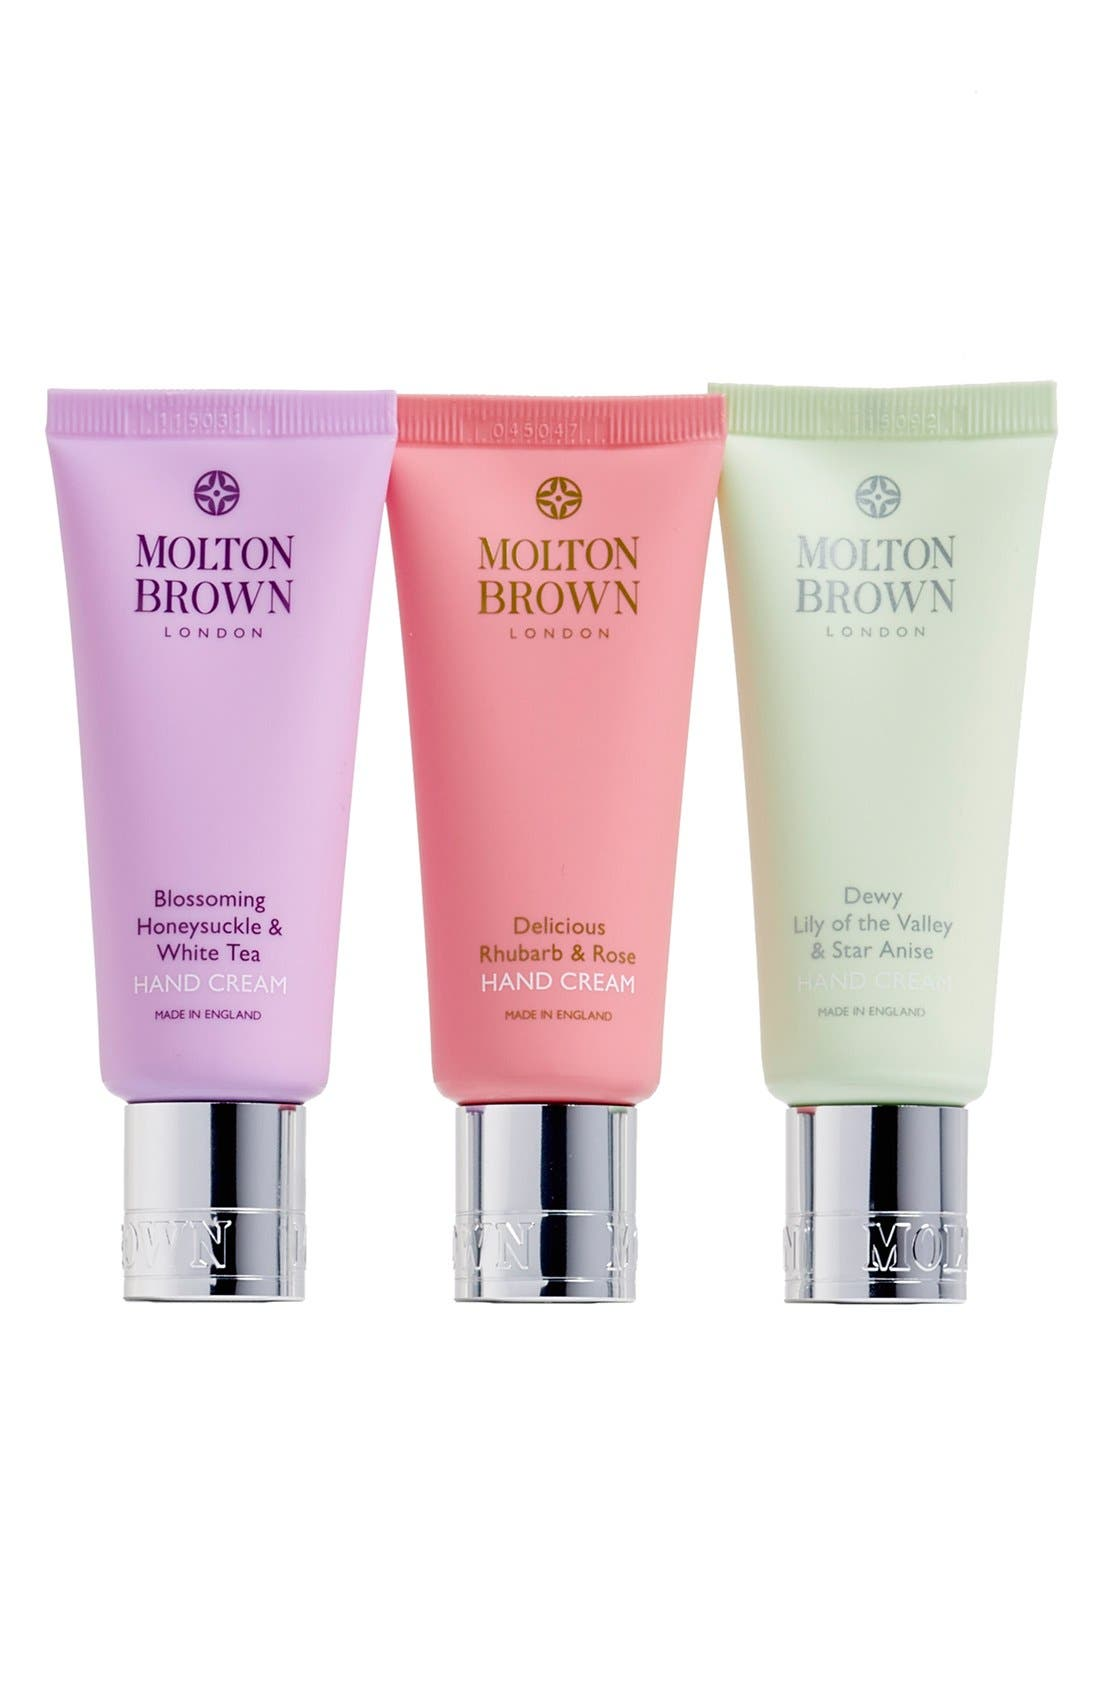 MOLTON BROWN London 'Timeless Florals' Hand Cream Trio (Limited Edition) ($45 Value)